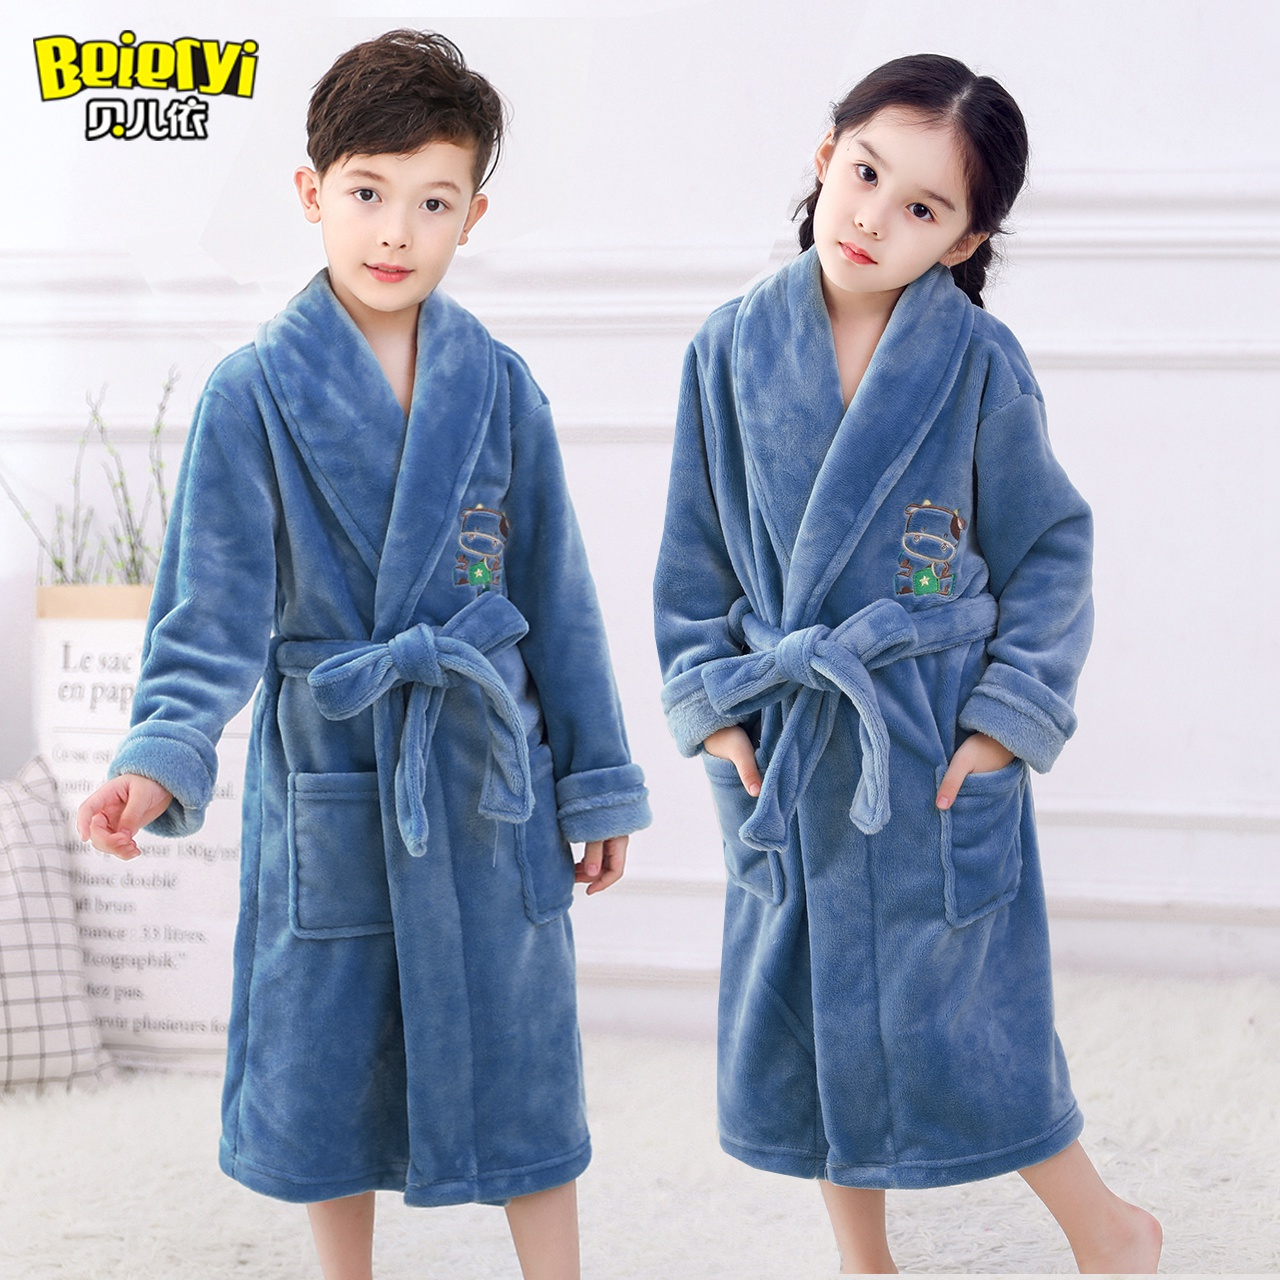 d14e69a2e304 USD 47.43  Children s clothing children s thickened nightgown boys ...